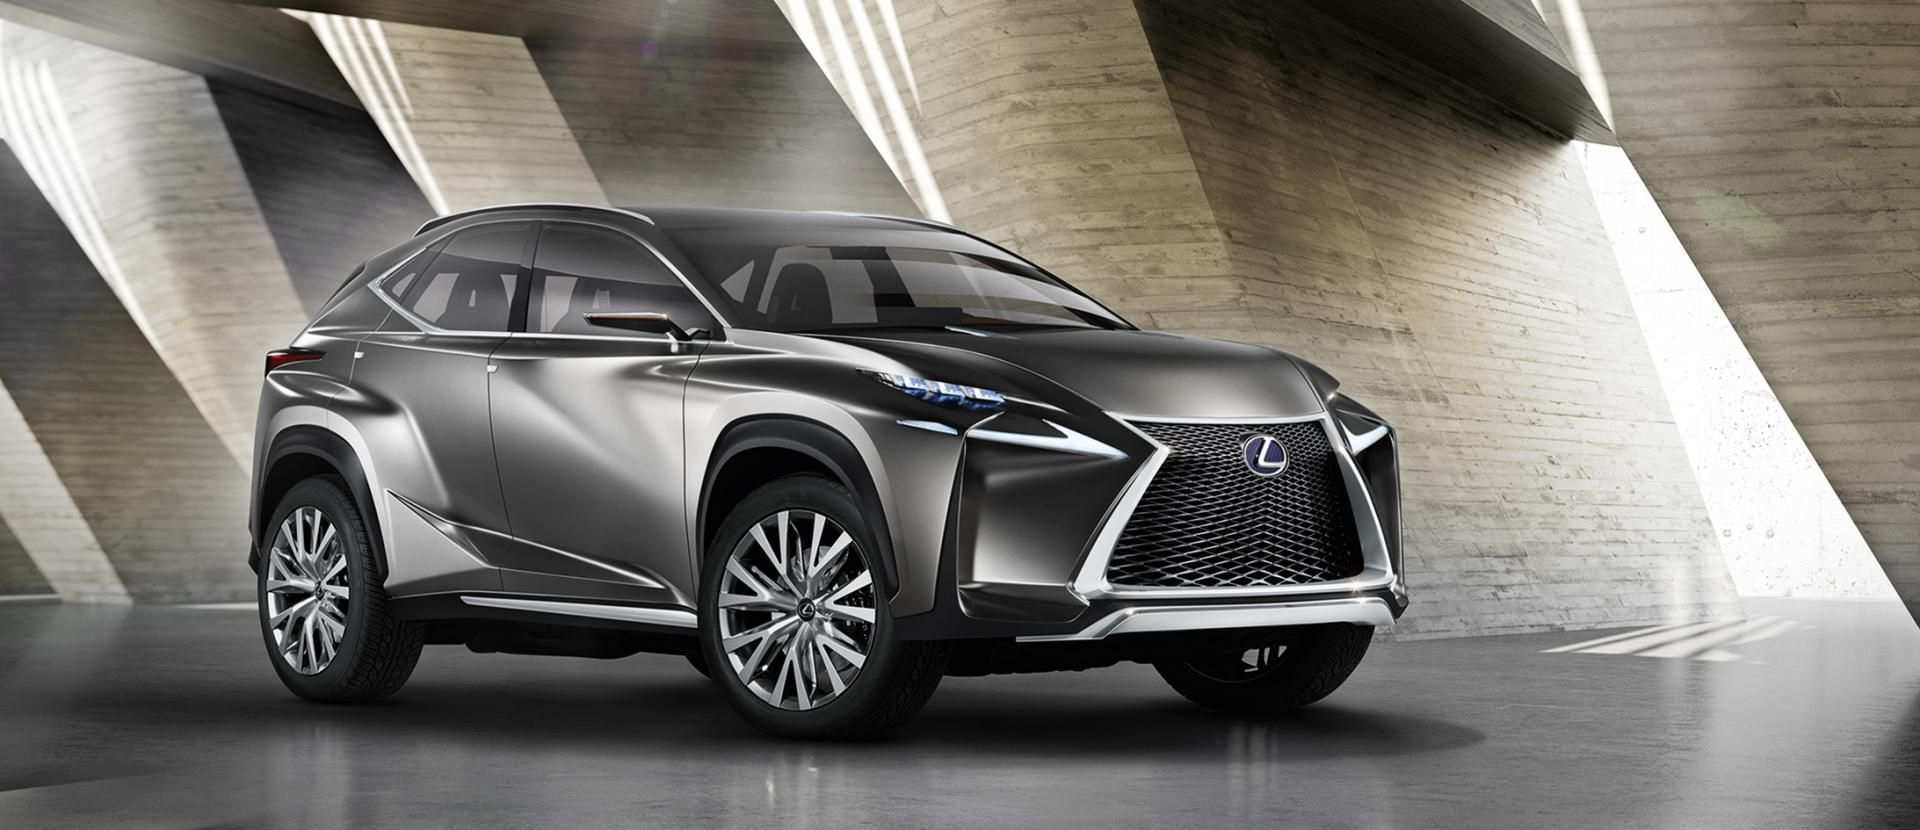 91 Concept of Lexus 2020 Es New Concept Price and Review for Lexus 2020 Es New Concept